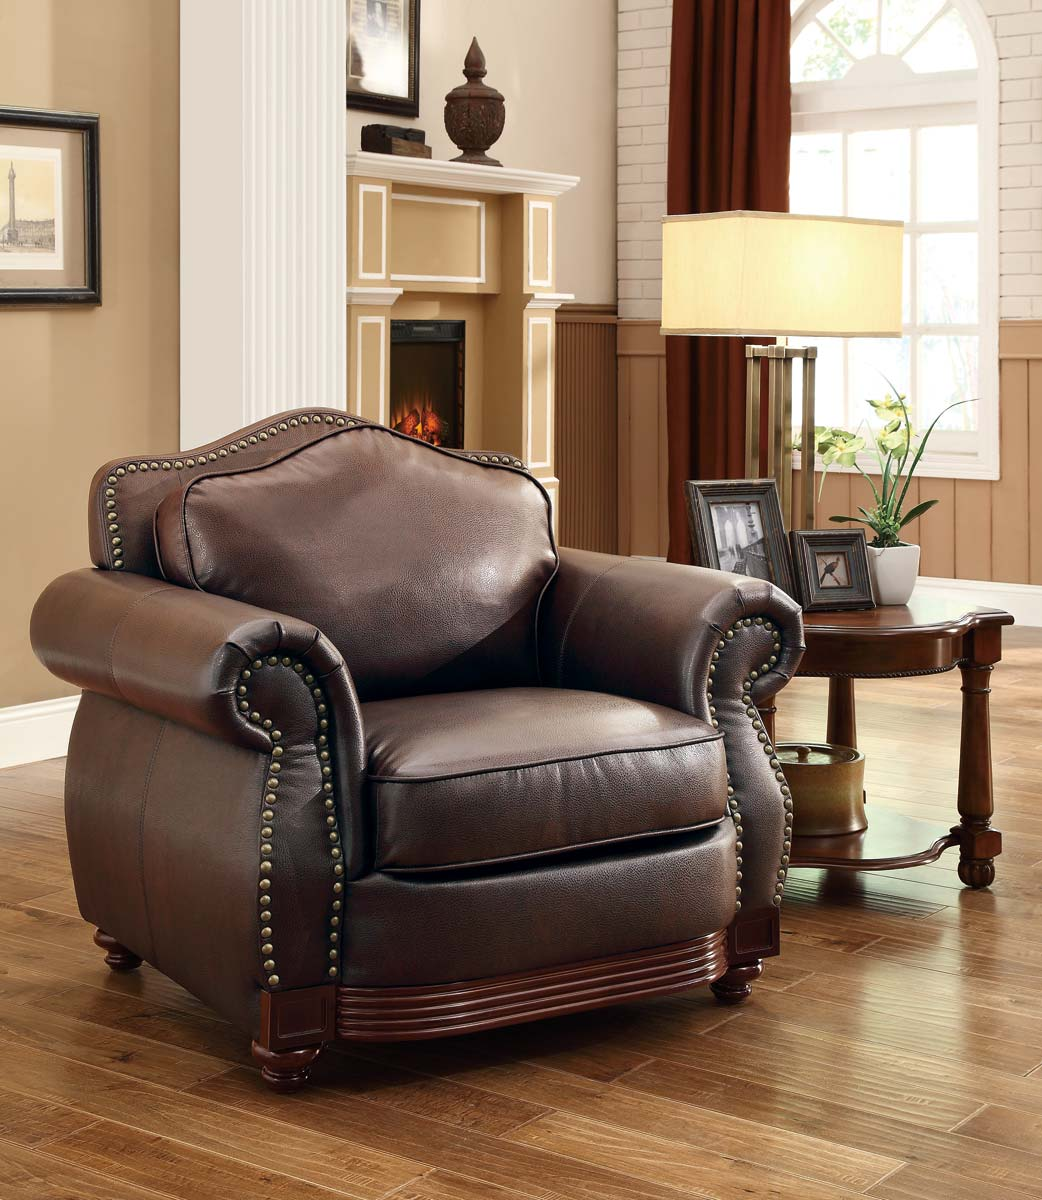 Accent Chairs To Go With Brown Leather Sofa Homelegance Midwood Bonded Leather Chair Dark Brown